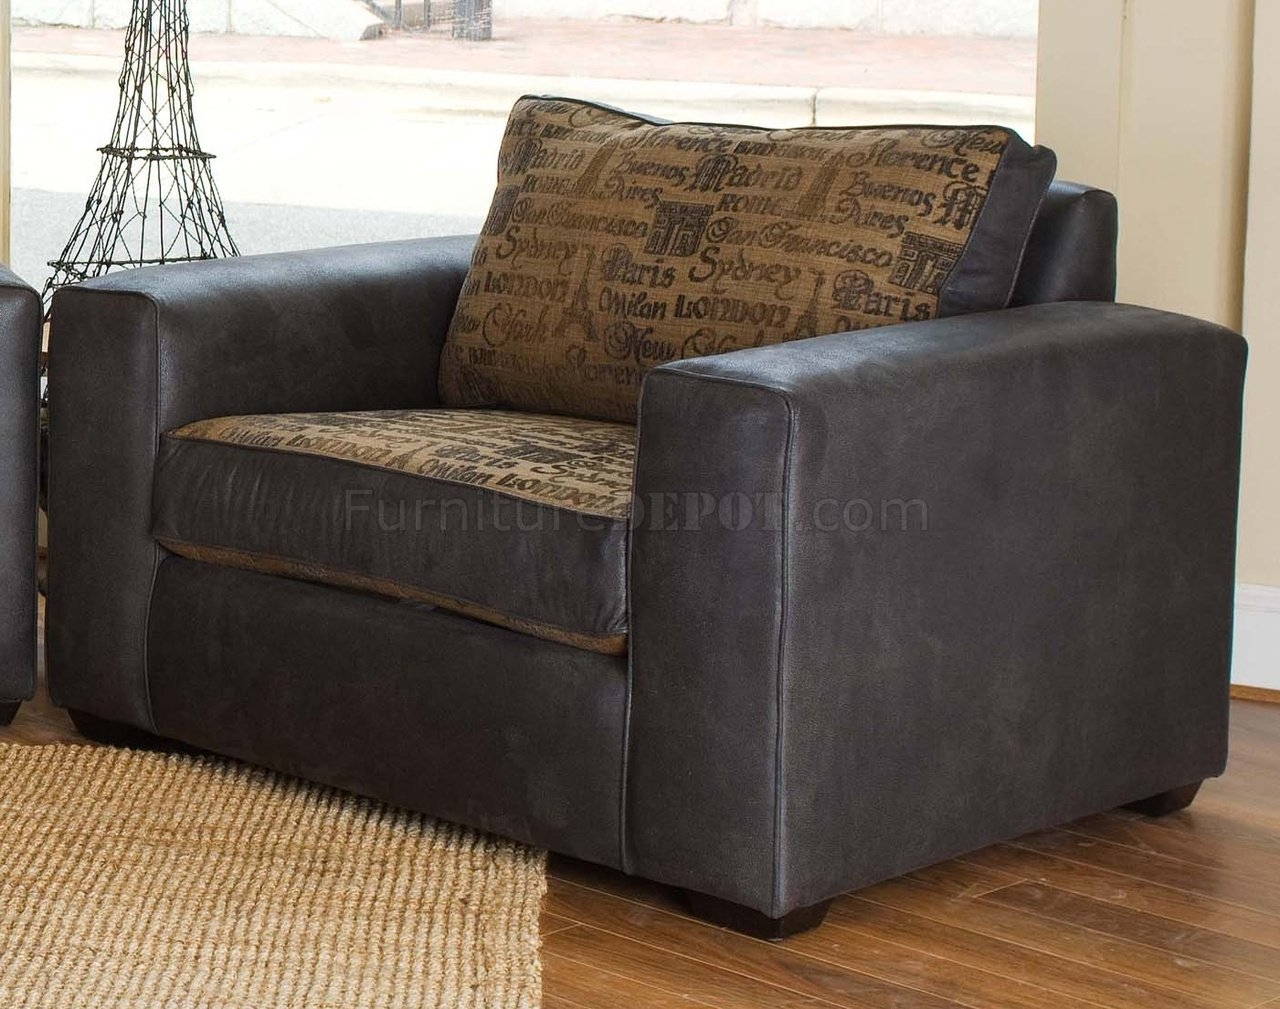 Leather Modern Living Room Sofa Large Chair Set With Regard To Large Sofa Chairs (Image 4 of 15)